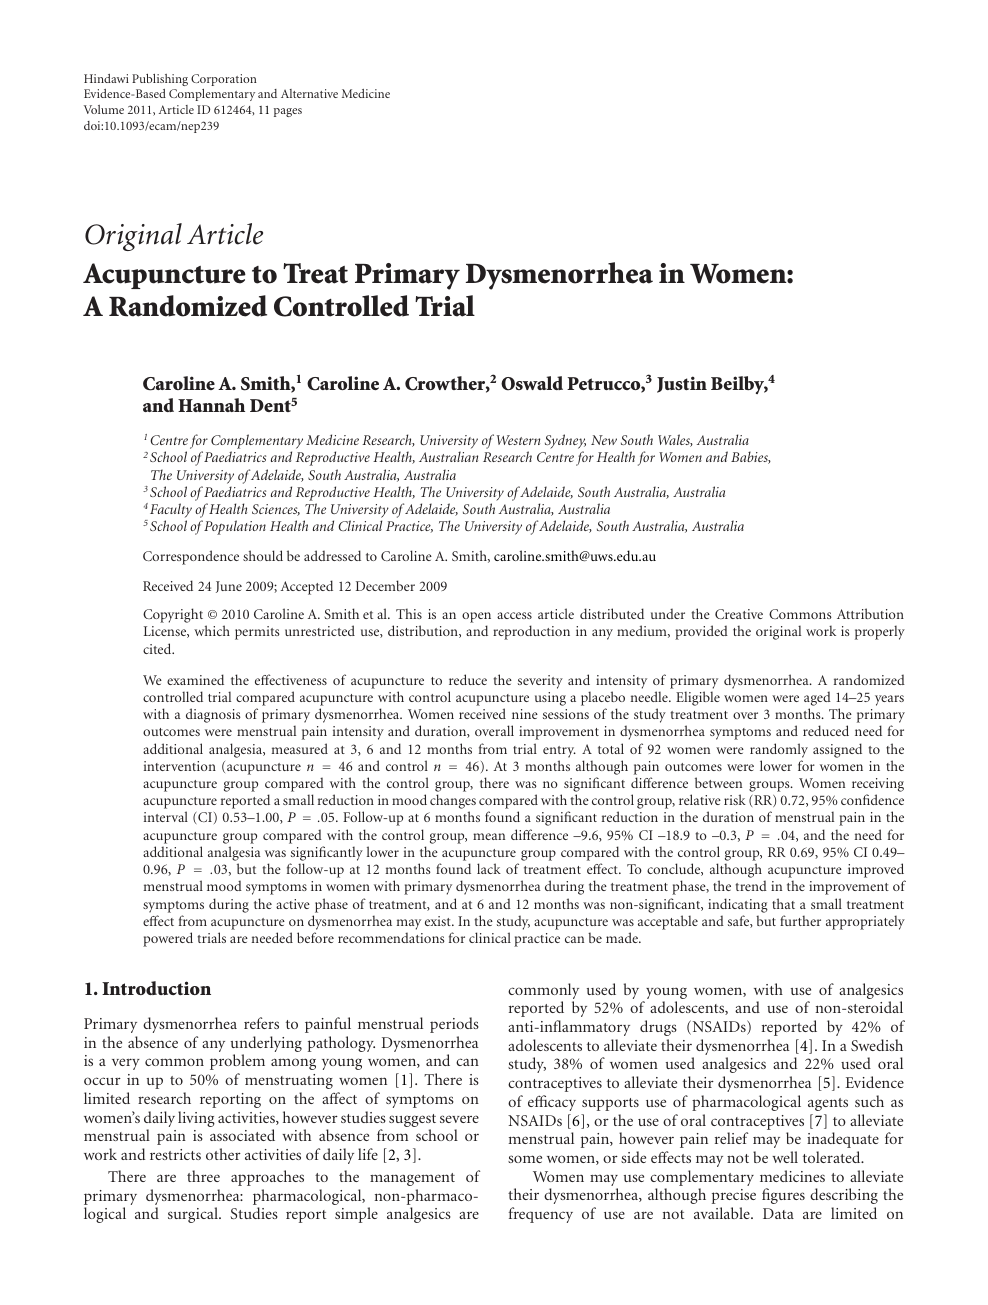 Acupuncture to Treat Primary Dysmenorrhea in Women: A